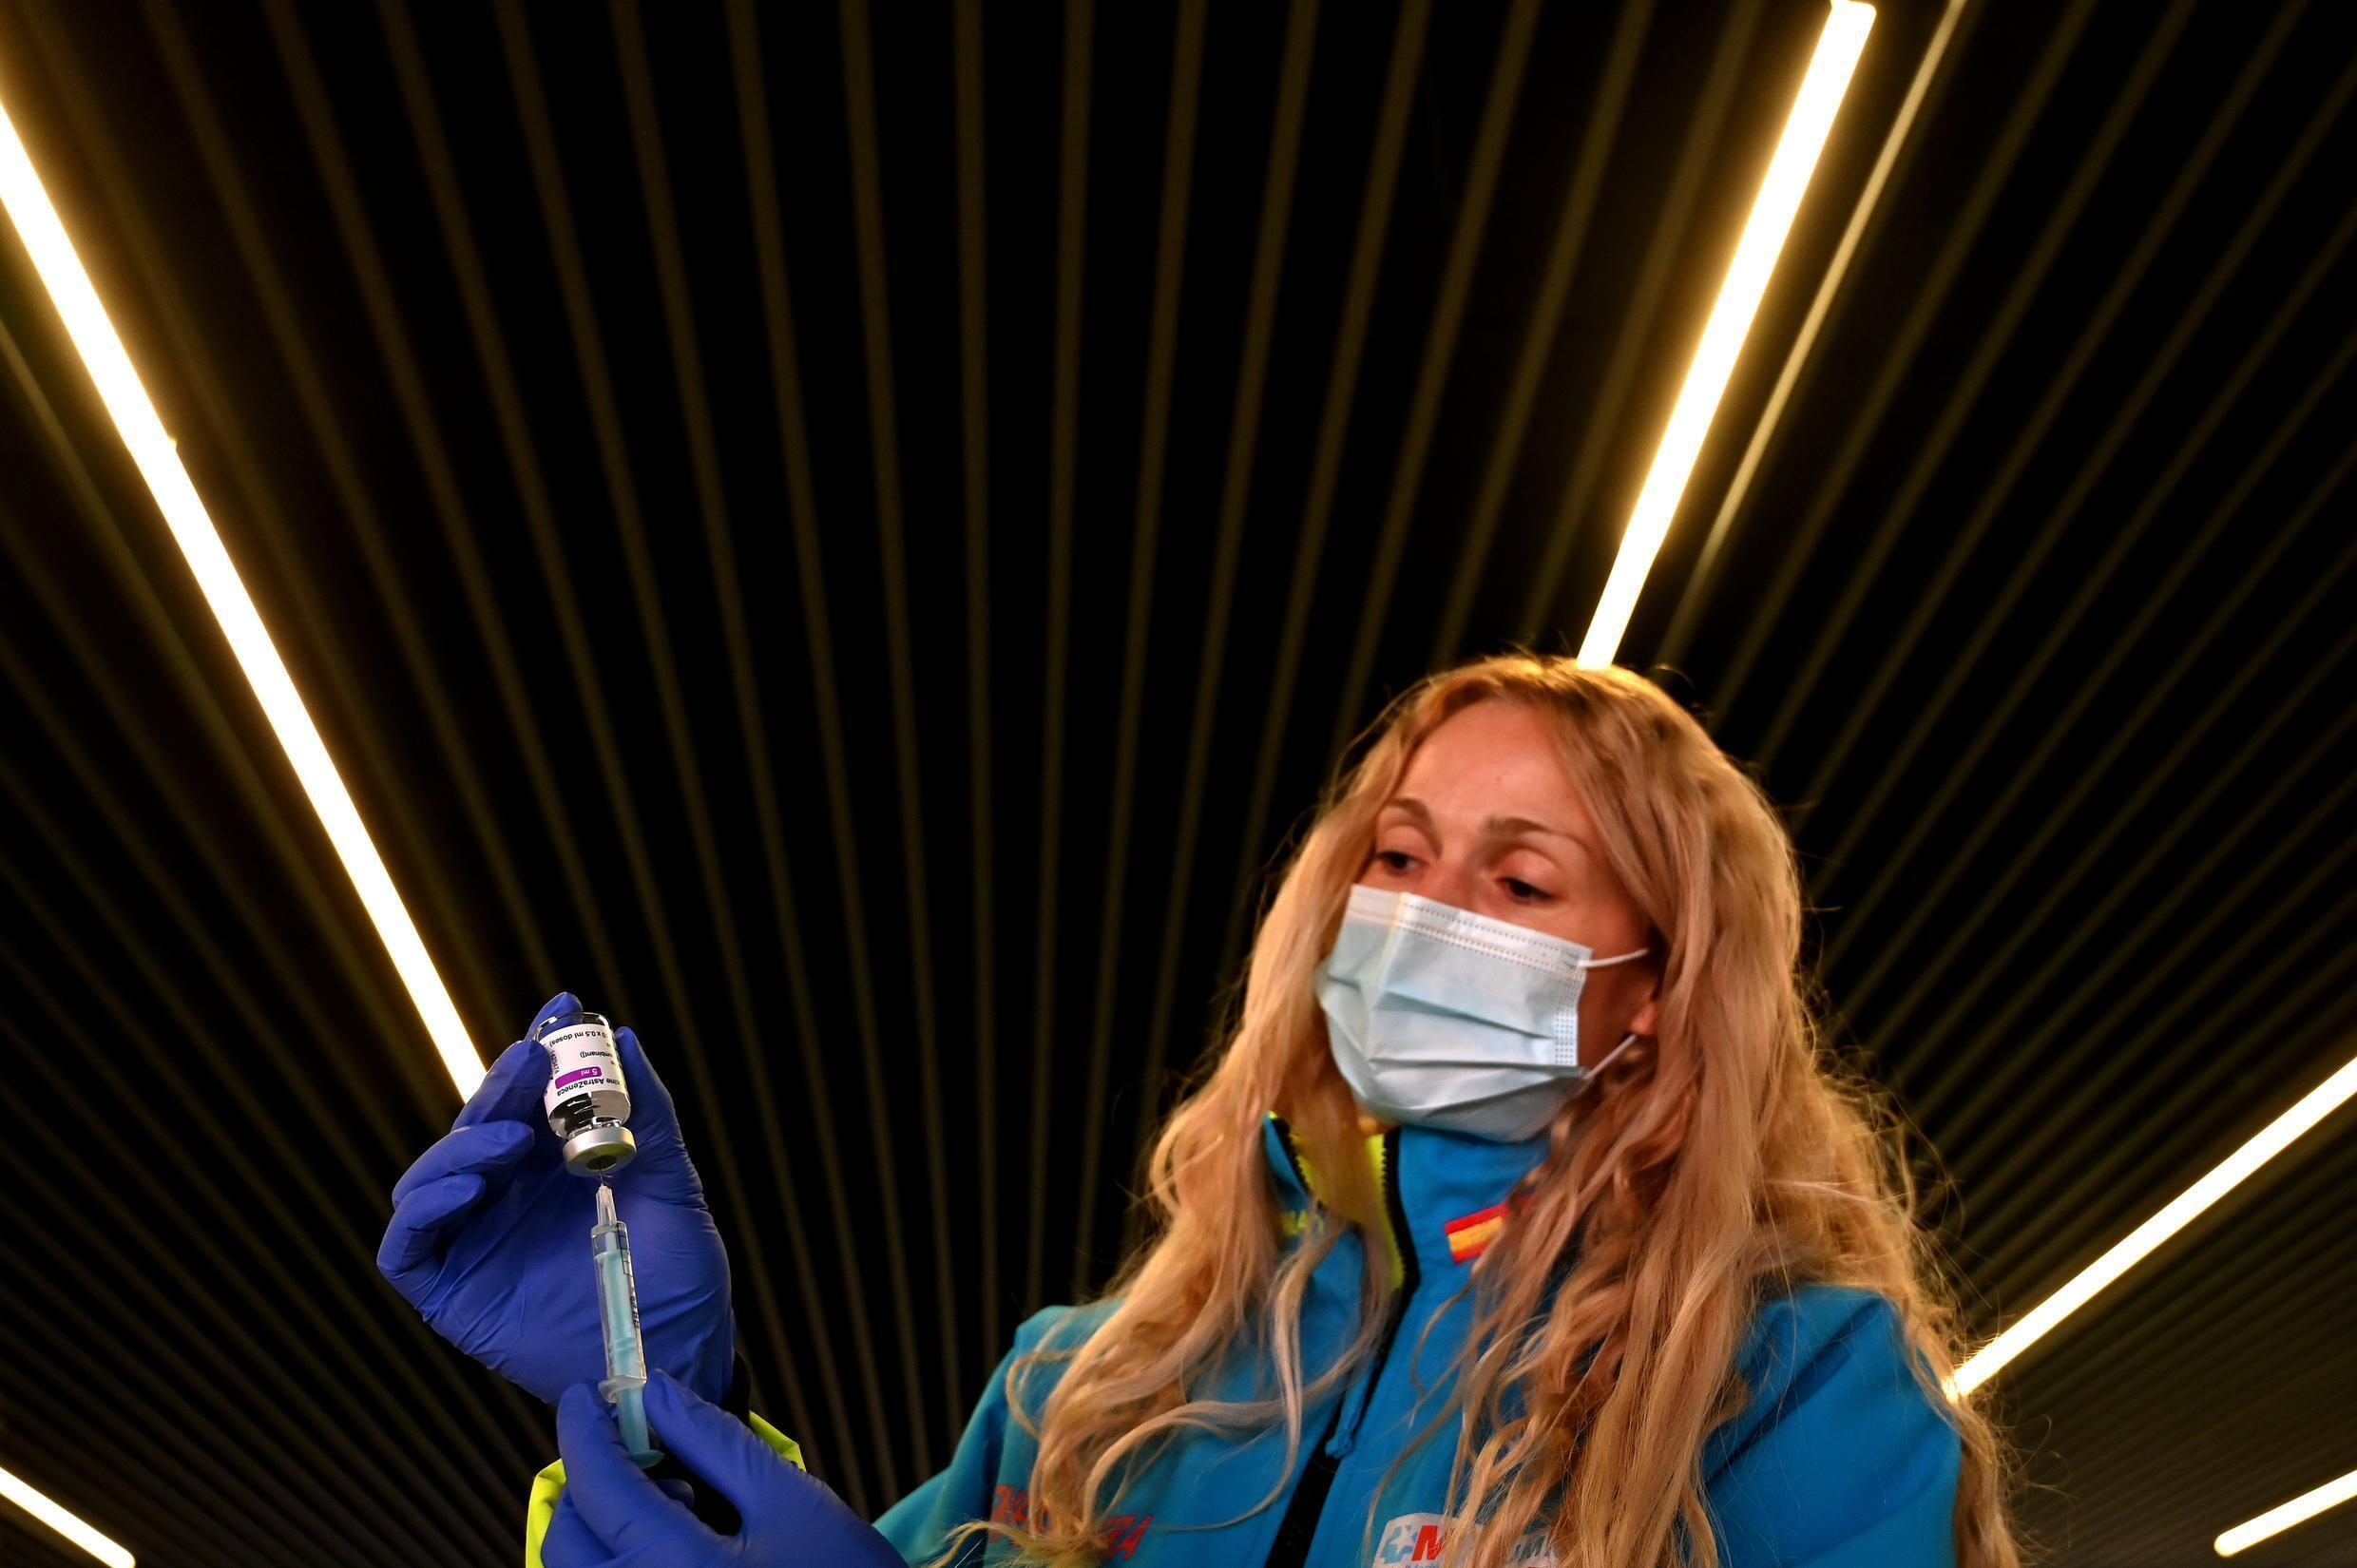 A health worker prepares a dose of the AstraZeneca vaccine in Madrid. Europe has received far fewer doses of the jab than promised